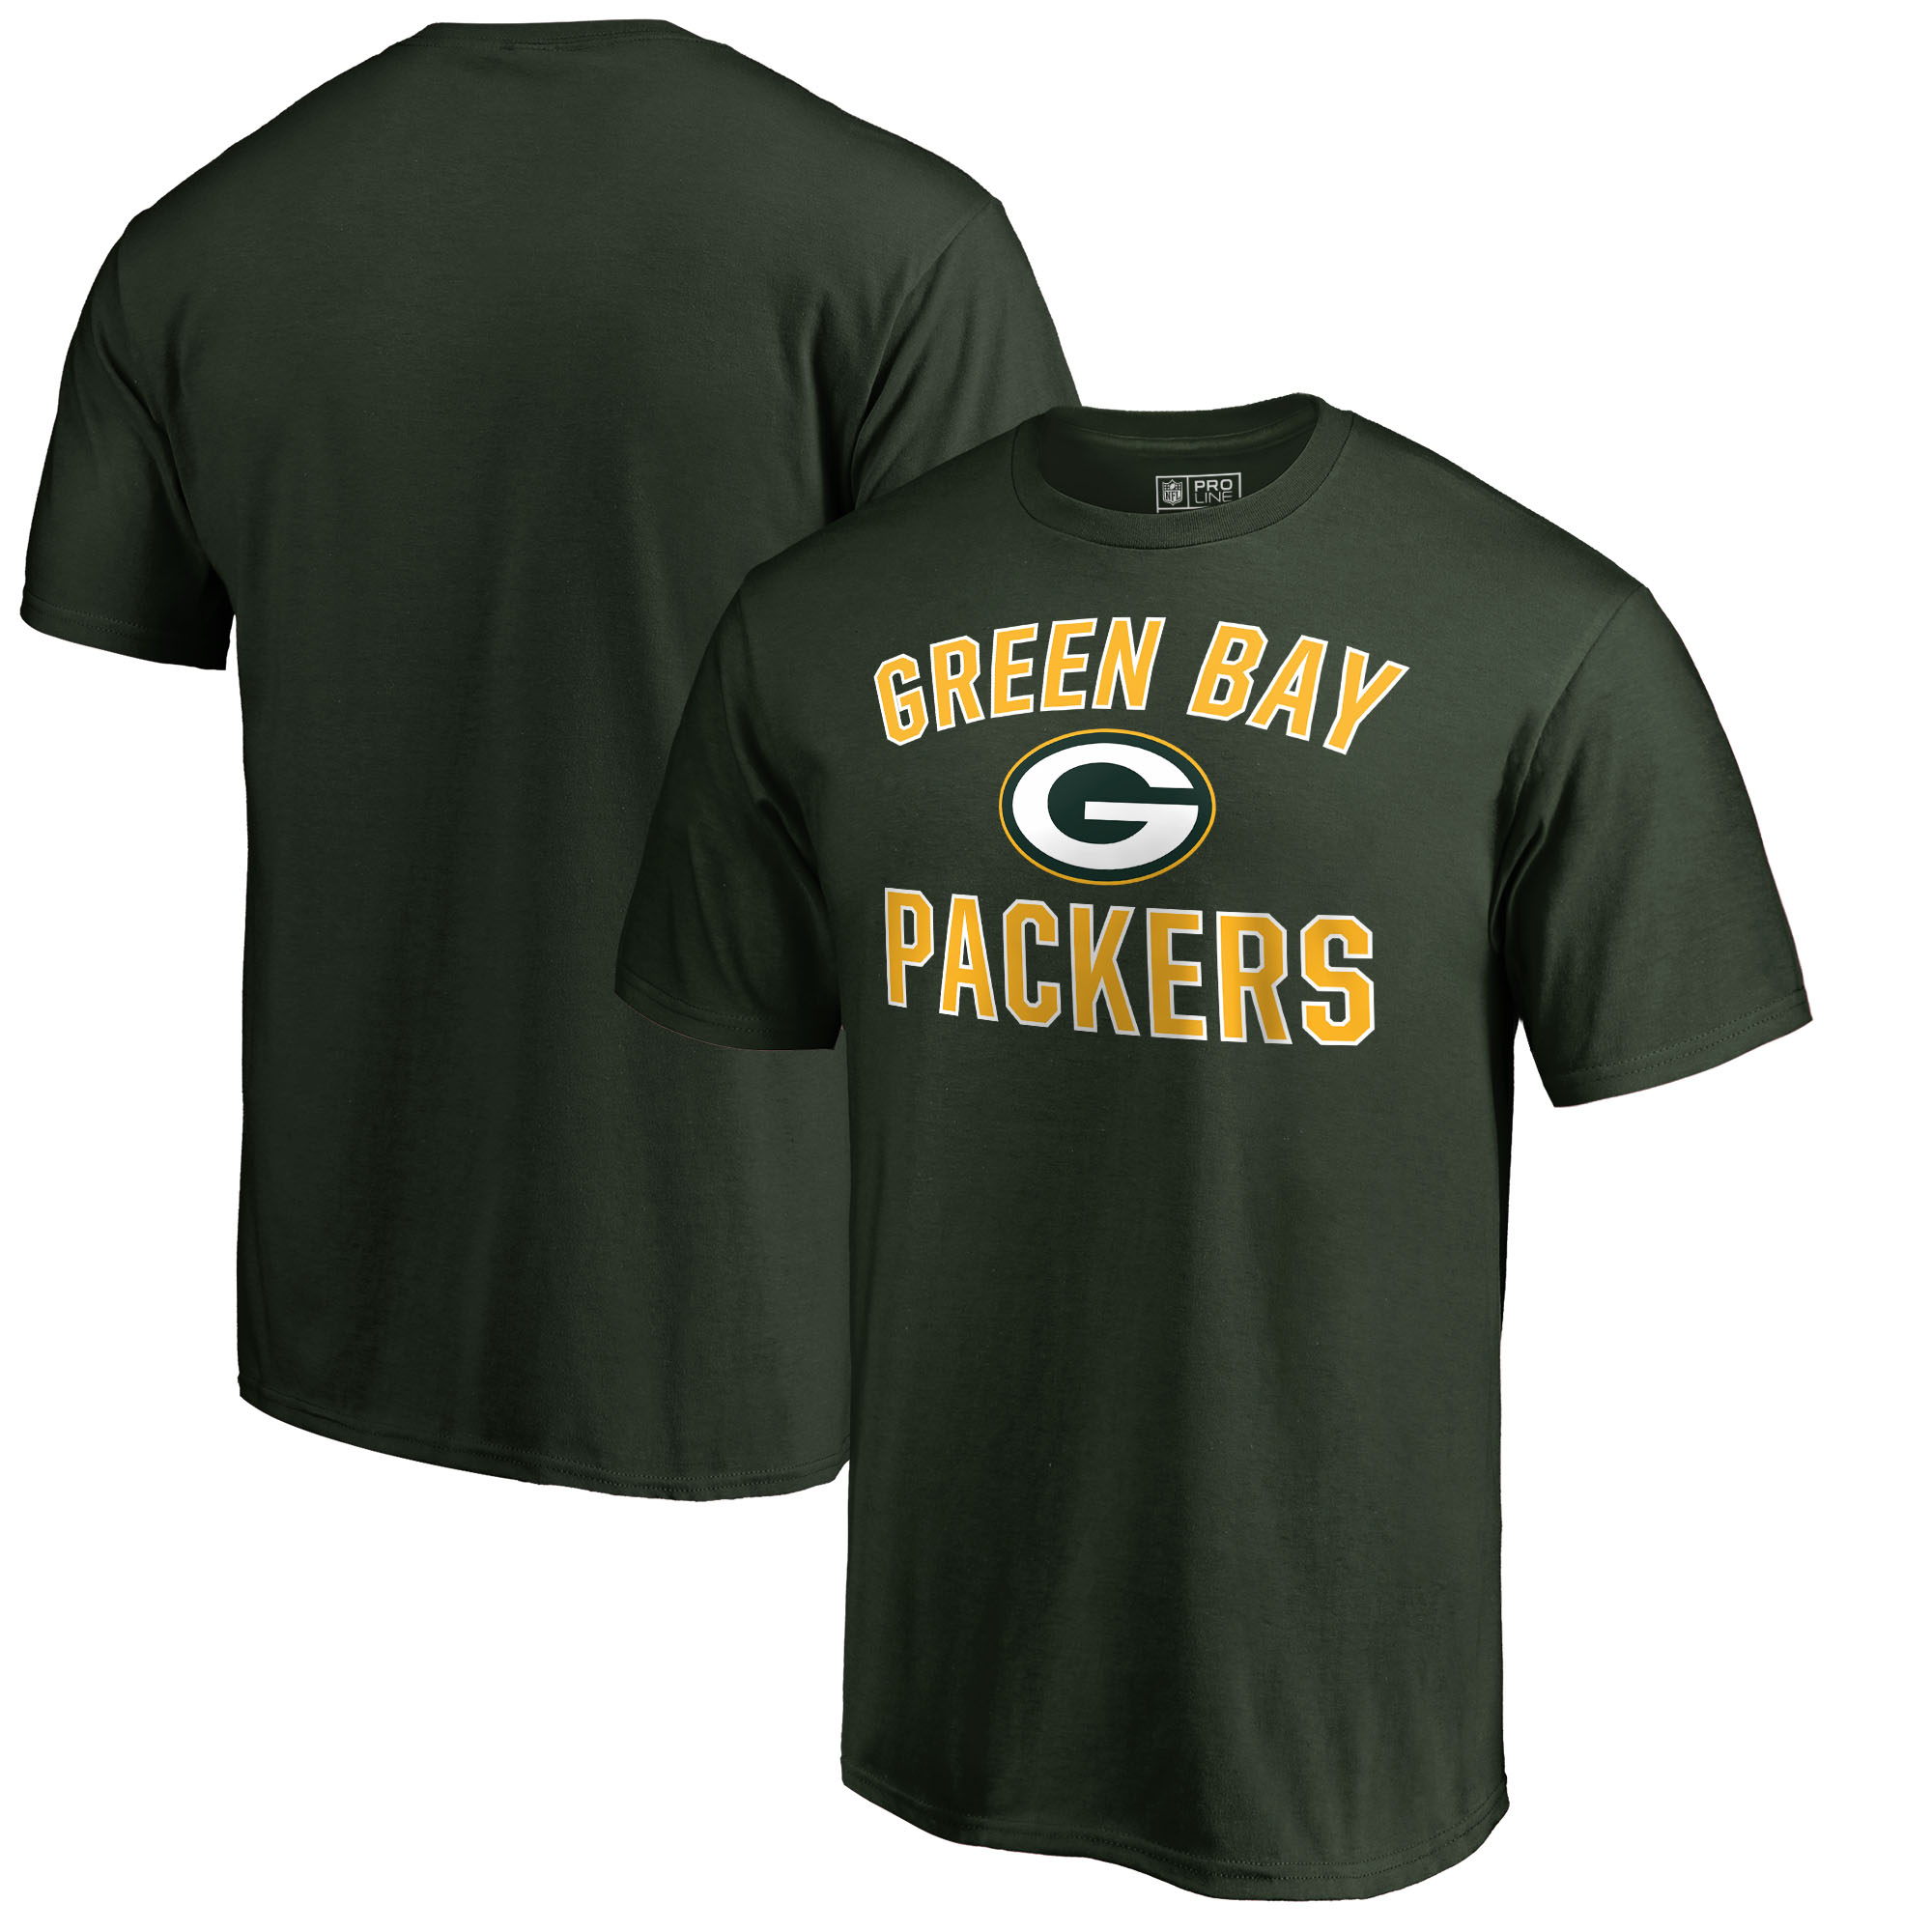 Green Bay Packers NFL Pro Line by Fanatics Branded Victory Arch T-Shirt - Green